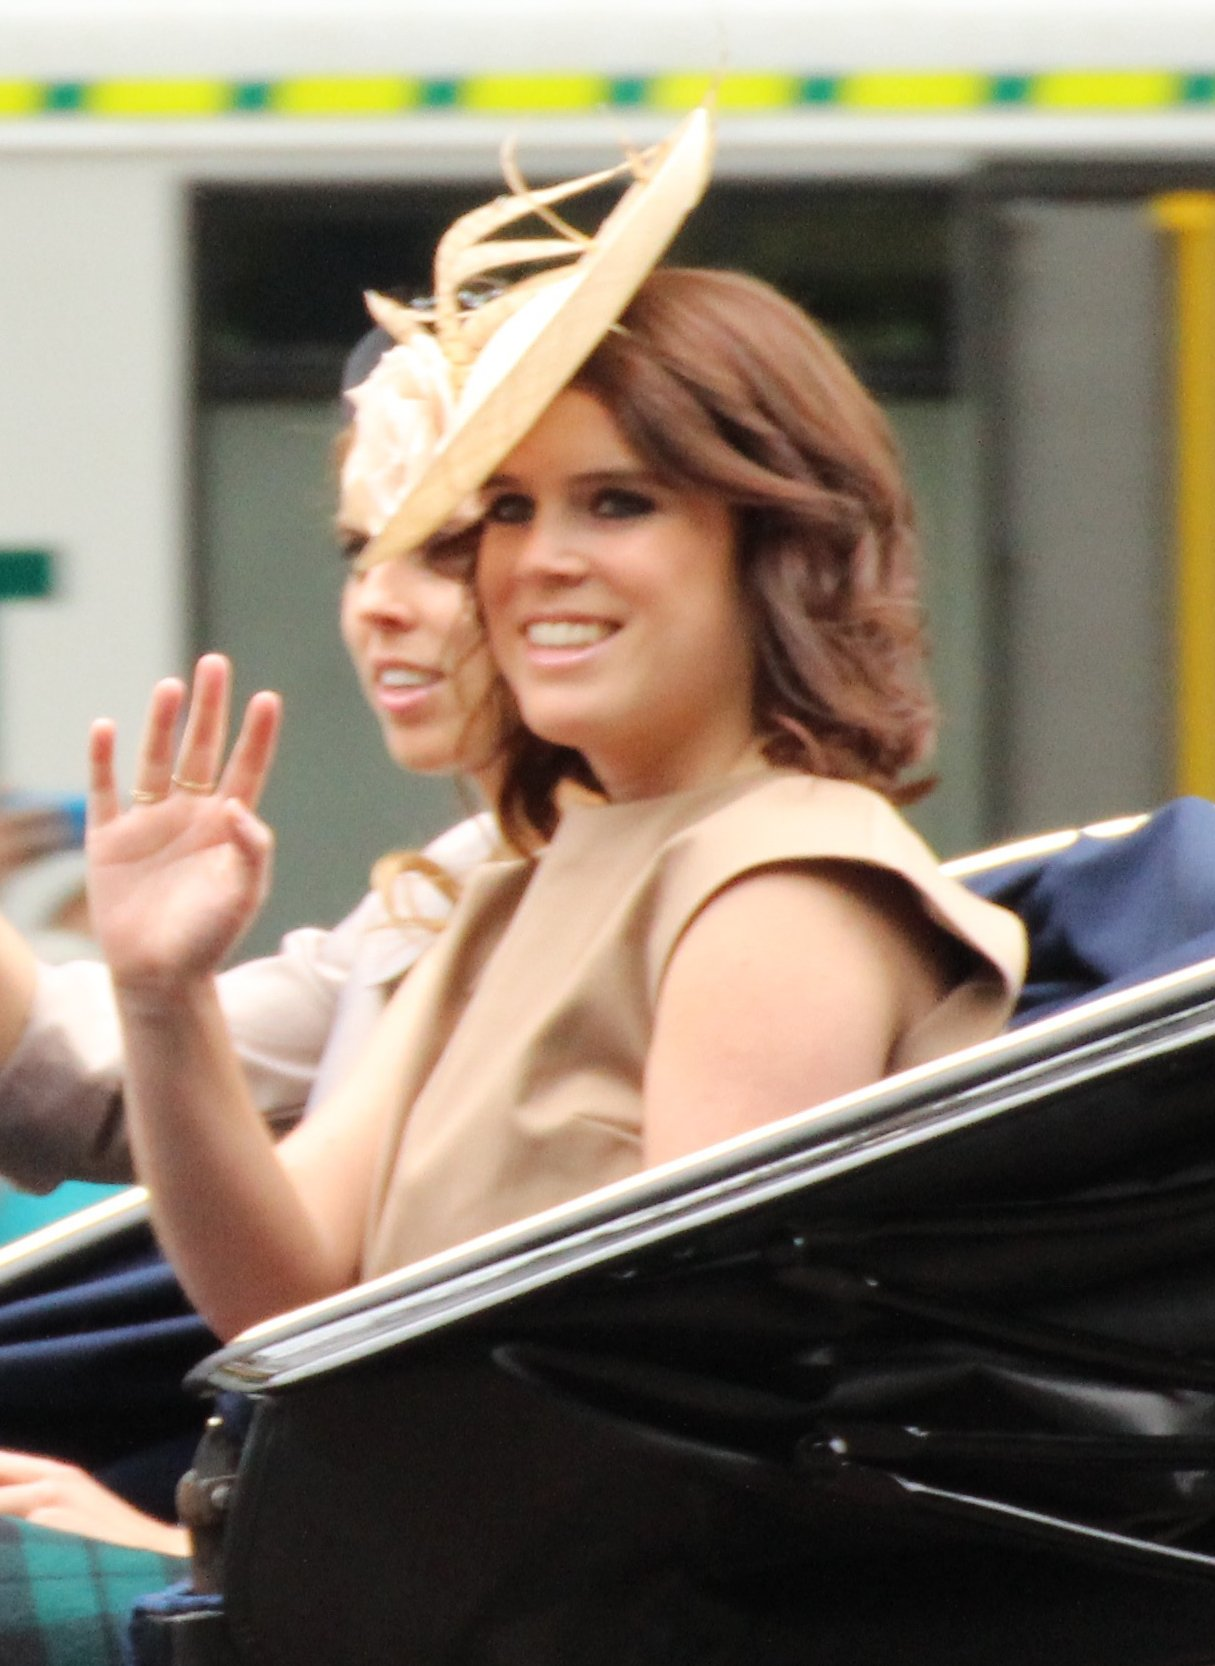 Princess Eugenie - Eugenie Victoria Helena was born to Prince Andrew, Duke of York and Sarah, Duchess of York, on March 23, 1990, in Portland Hospital in London. She has an older sister, Princess Beatrice and is the third granddaughter of Queen Elizabeth and Prince Philip.She graduated from Newcastle University with a 2:1 in English literature and history of art. At the moment, she is eighth in line to the British throne and does carry out public duties for the Royal Family. Eugenie is married to Jack Brooksbank (m. October 2018).She works for the Hauser & Wirth art gallery.(Photo Courtesy of Keri Heinzmann)